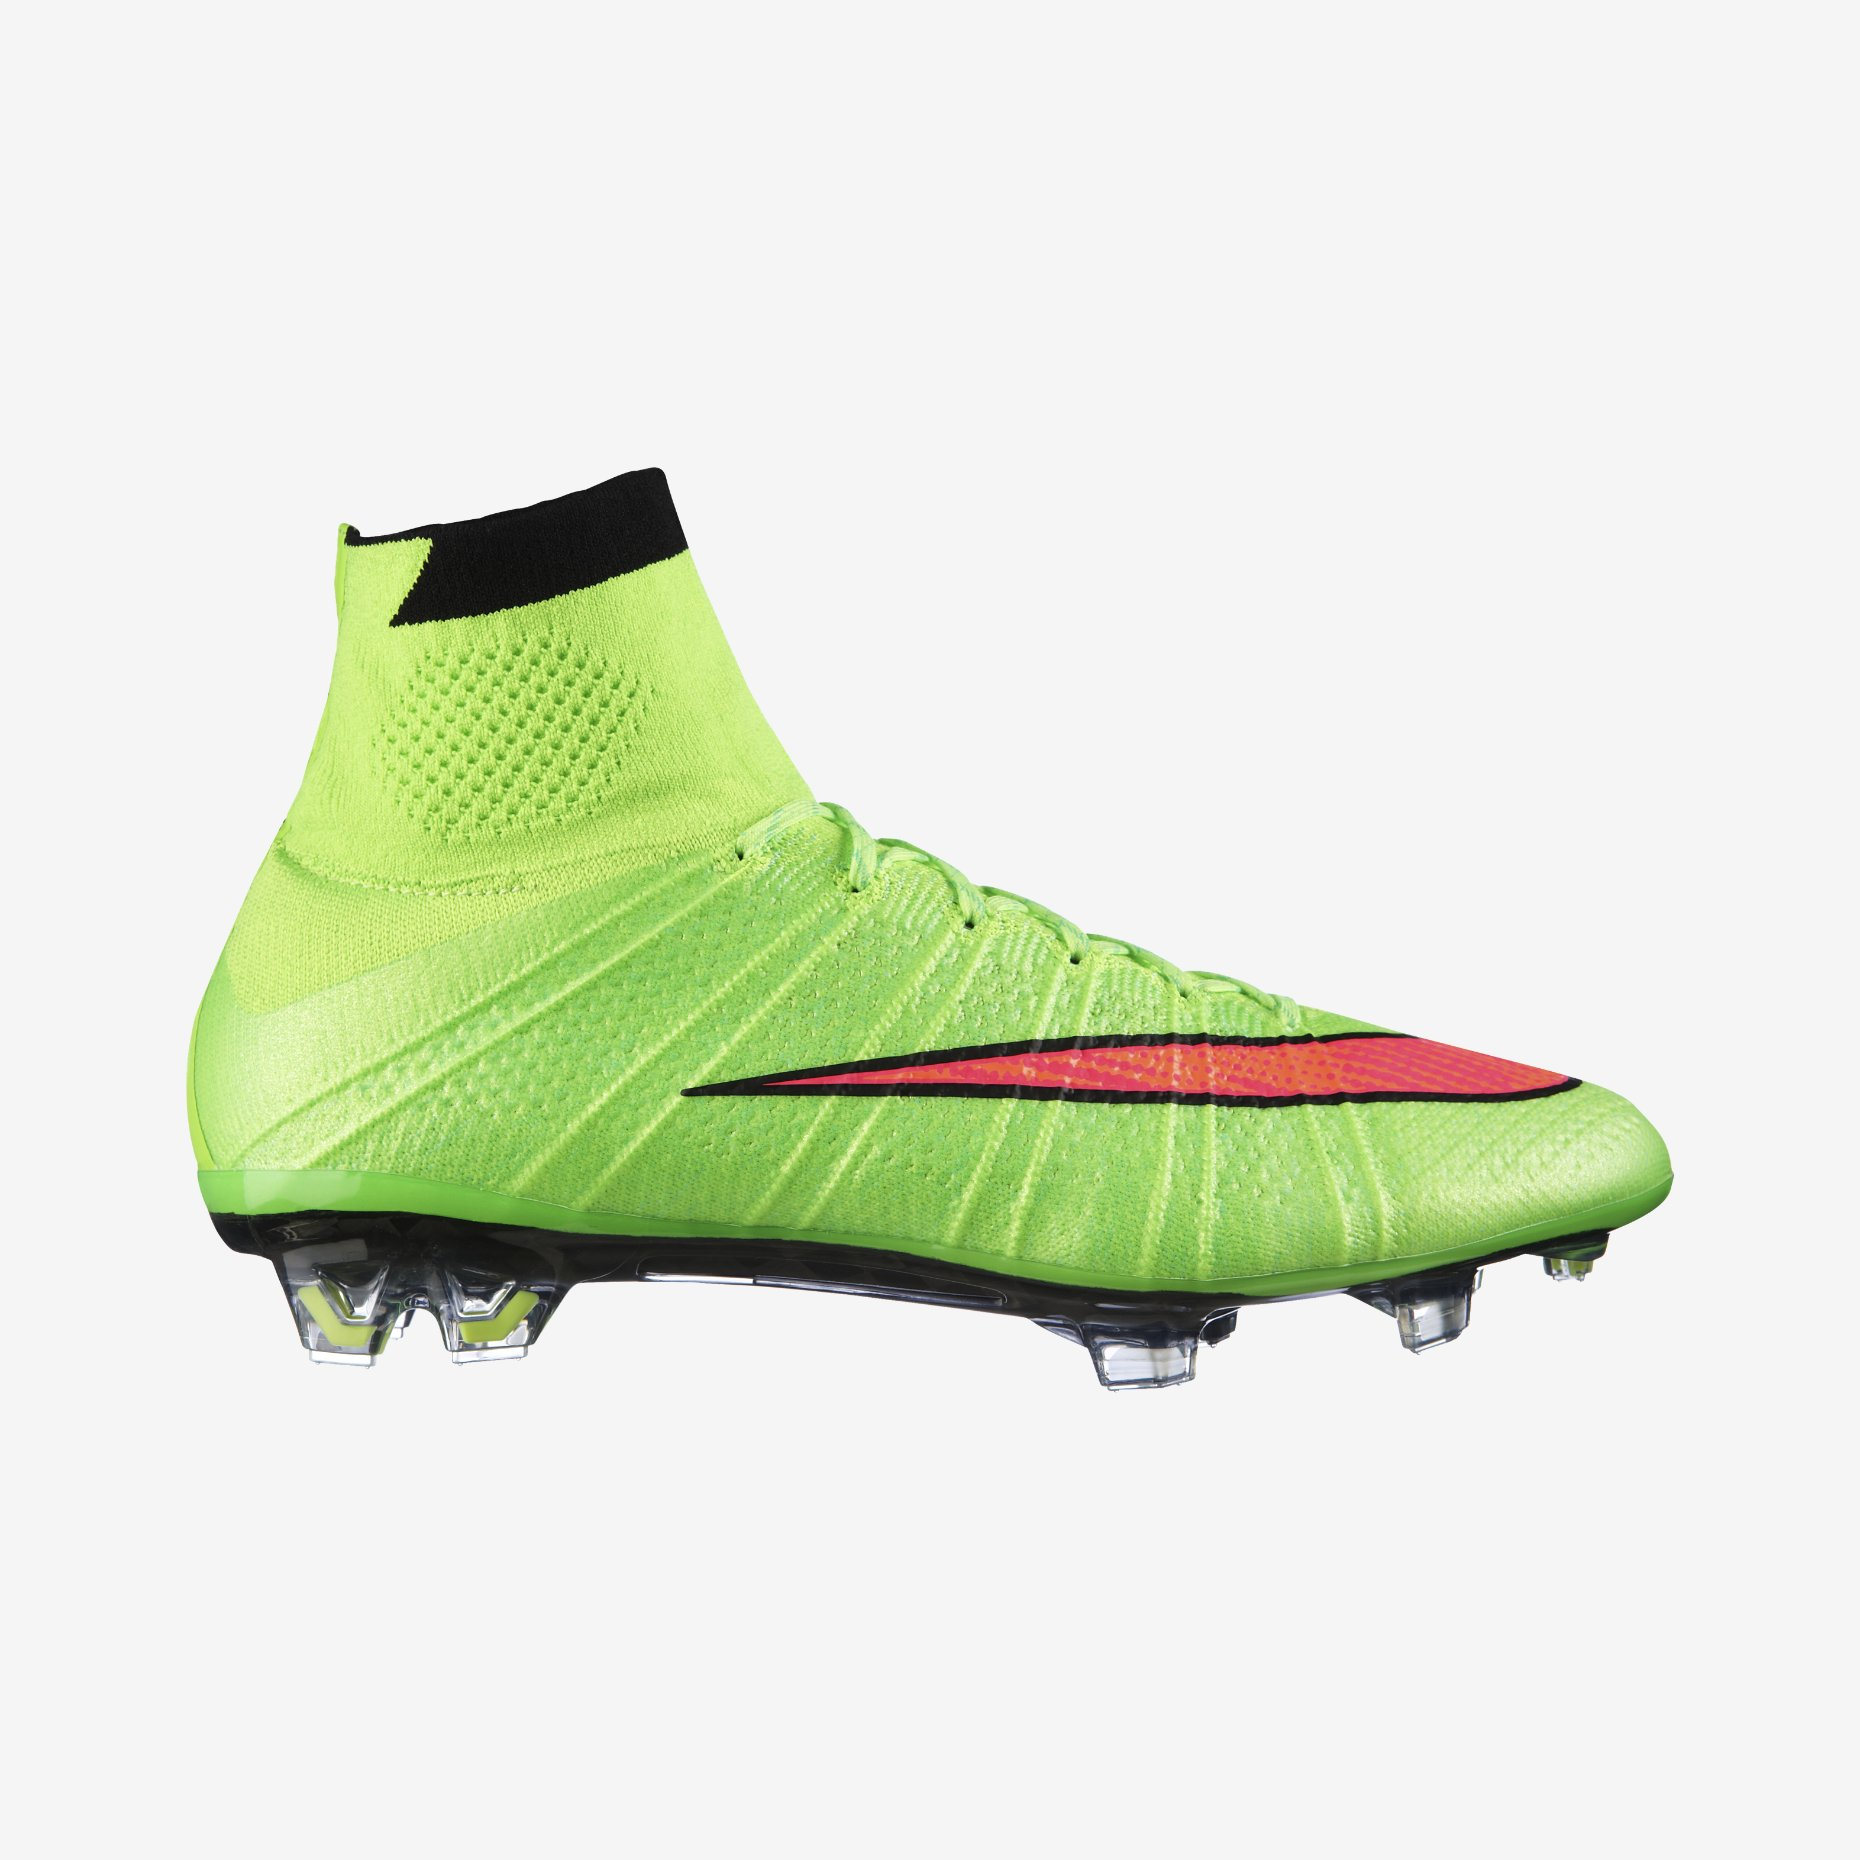 Nike launch new Electric Green Superfly boots for Cristiano Ronaldo, regular Vapors for human beings